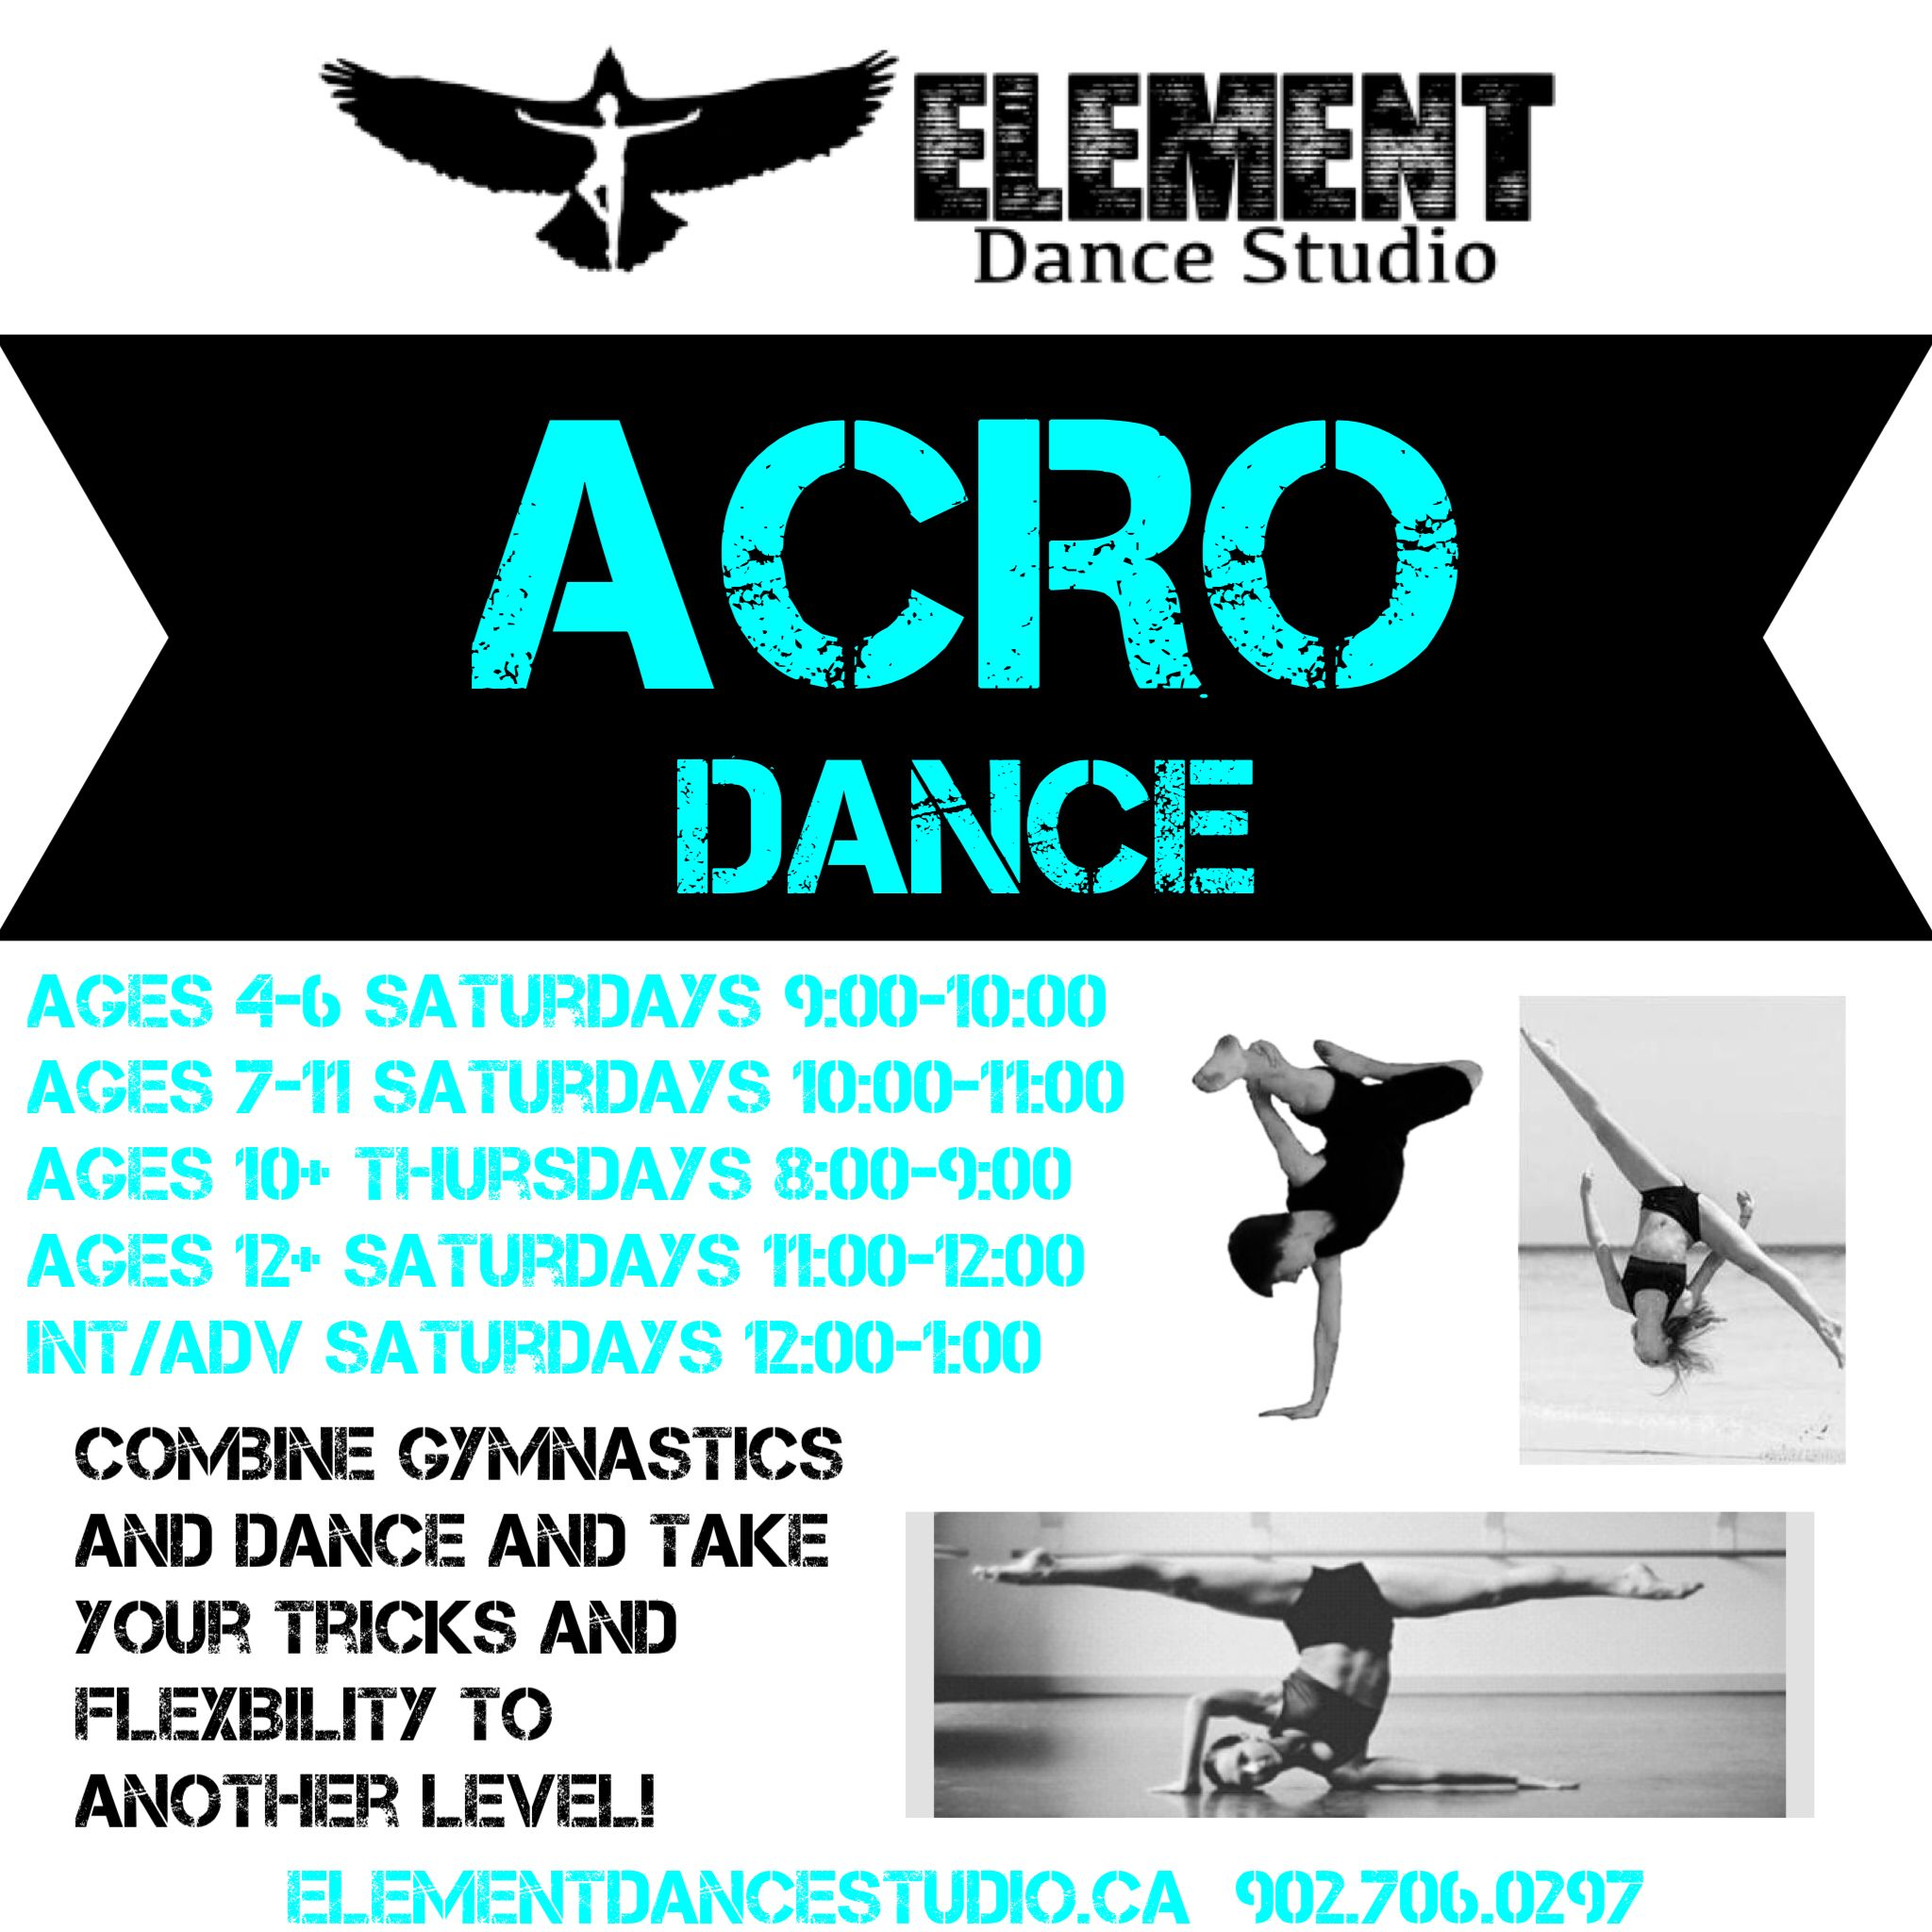 Combine gymnastics and dance to learn fun and exciting